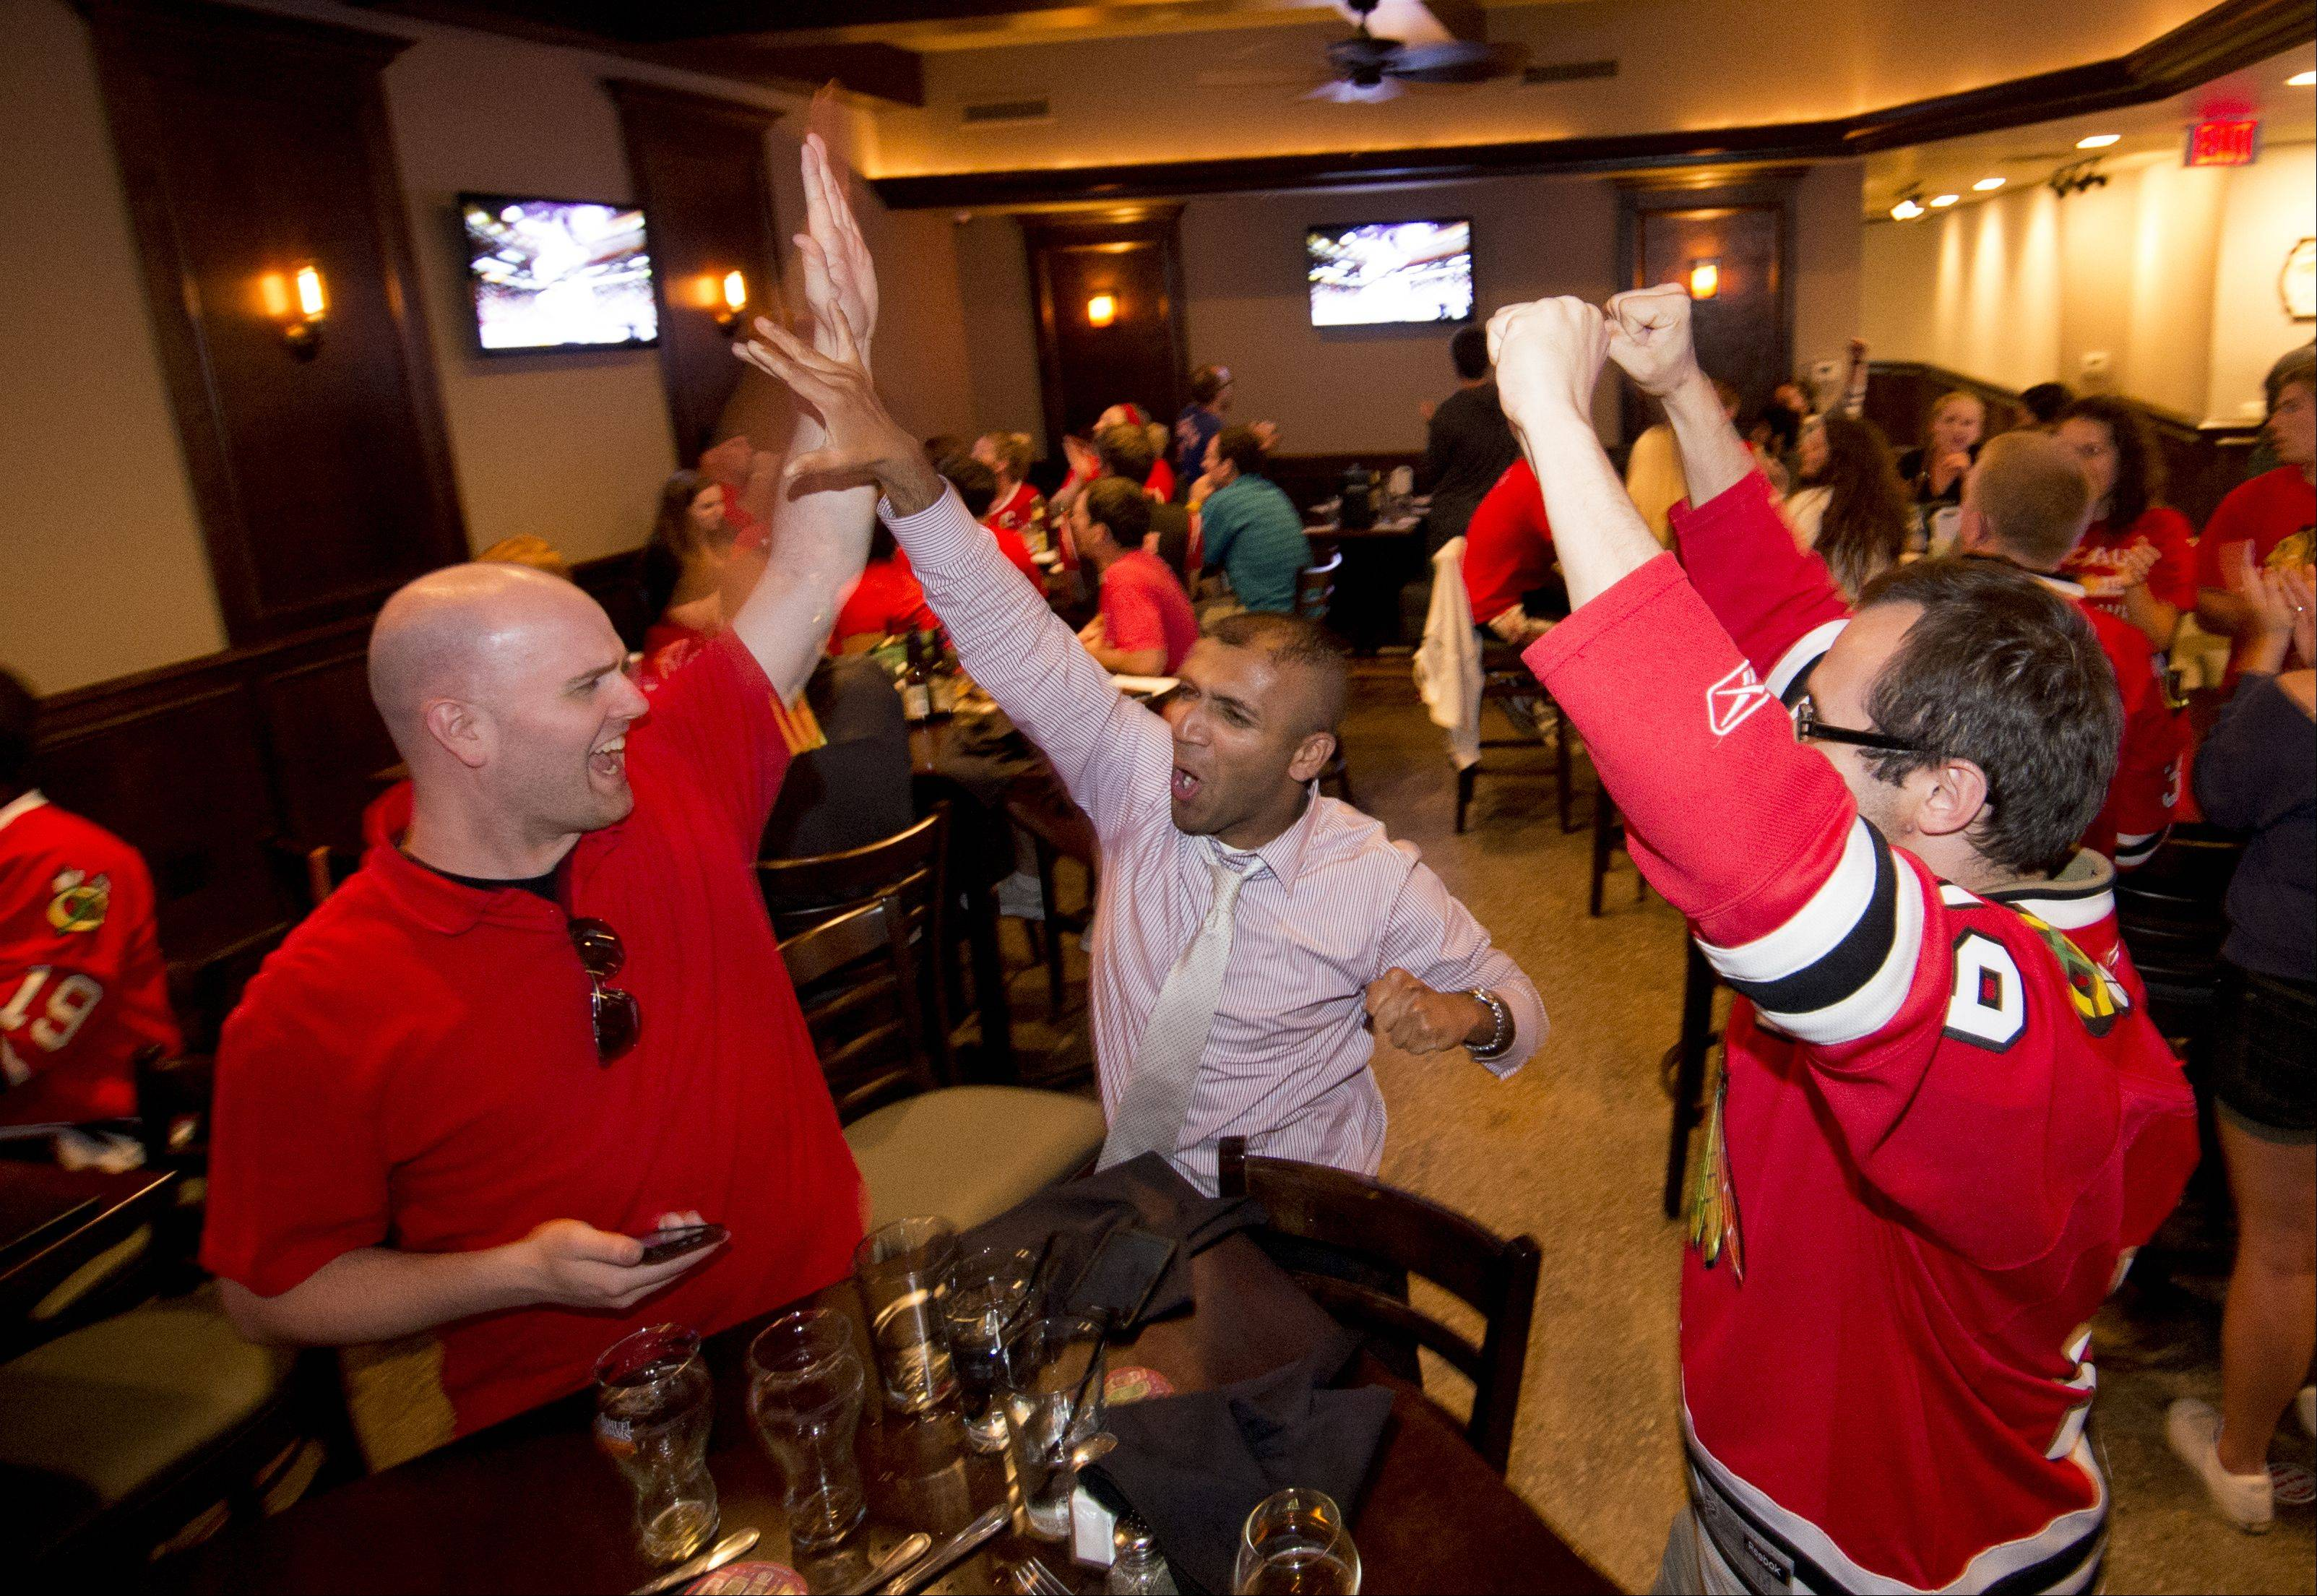 Jeff Smith of Wheaton, Raj Cherian of Aurora, and David Balsewicz of Winfield, celebrate the presentation of the Stanley Cup to the Chicago Blackhawks, while at Warren's Ale House in Wheaton Monday.